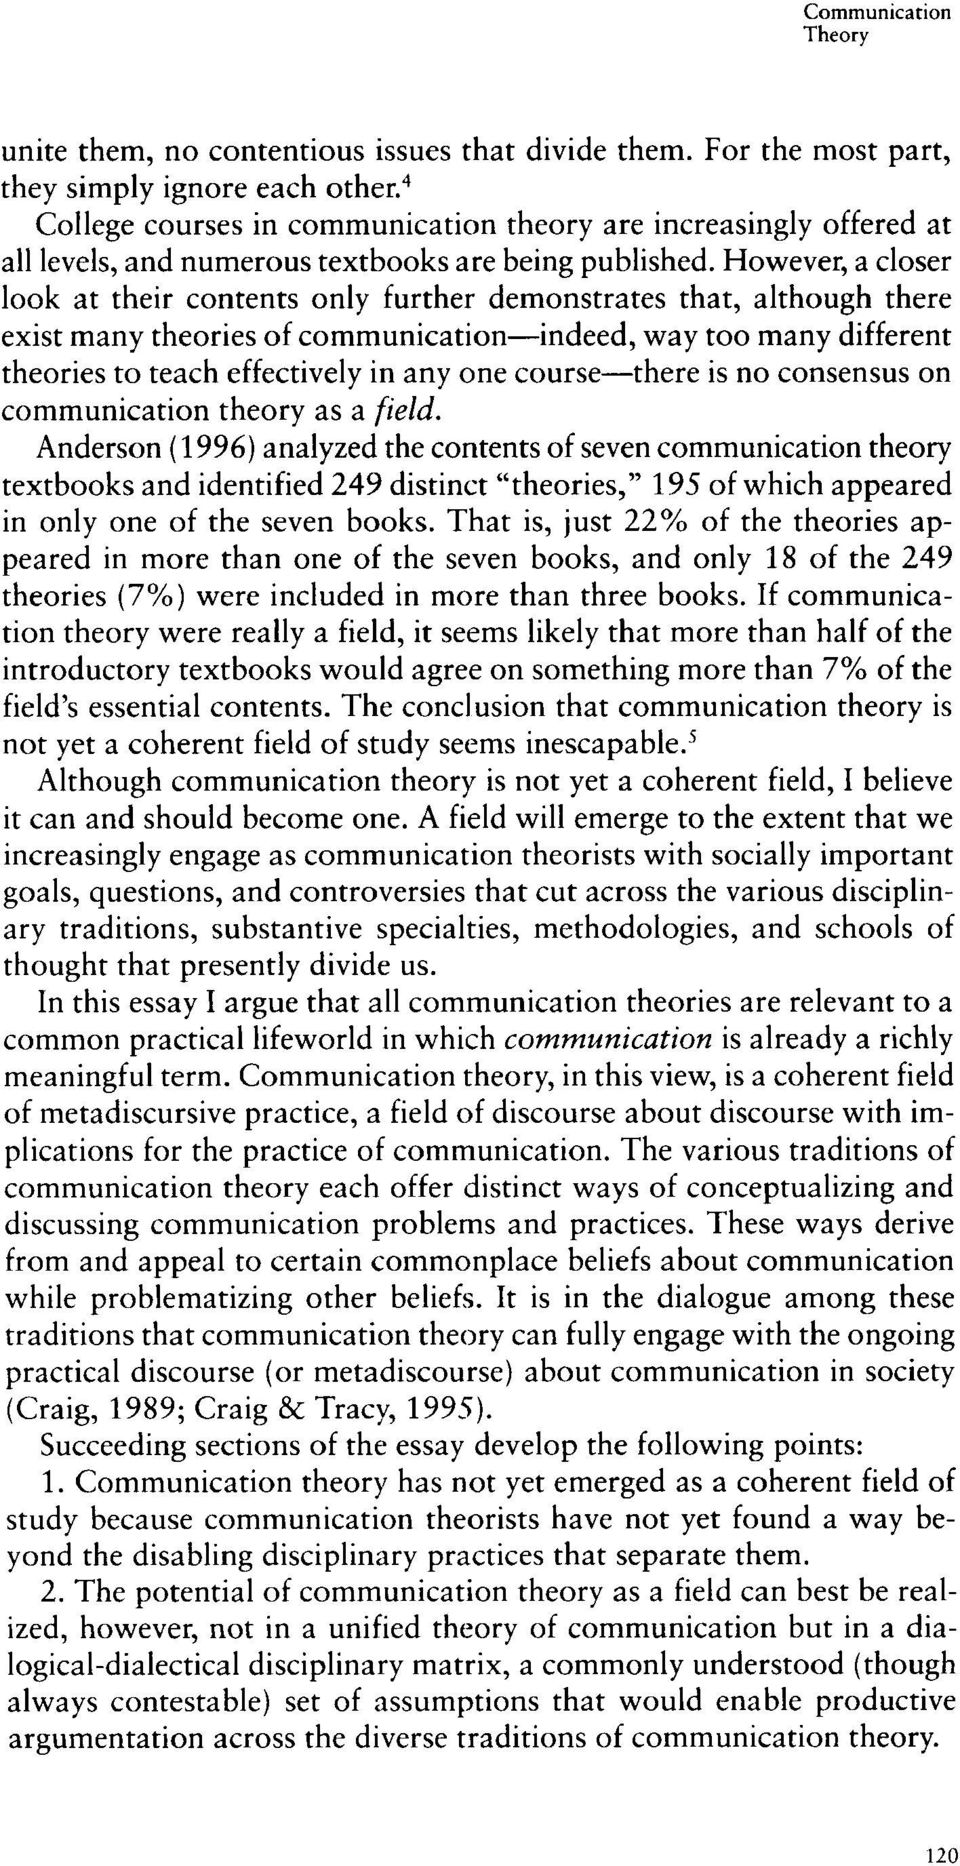 However, a closer look at their contents only further demonstrates that, although there exist many theories of communication-indeed, way too many different theories to teach effectively in any one